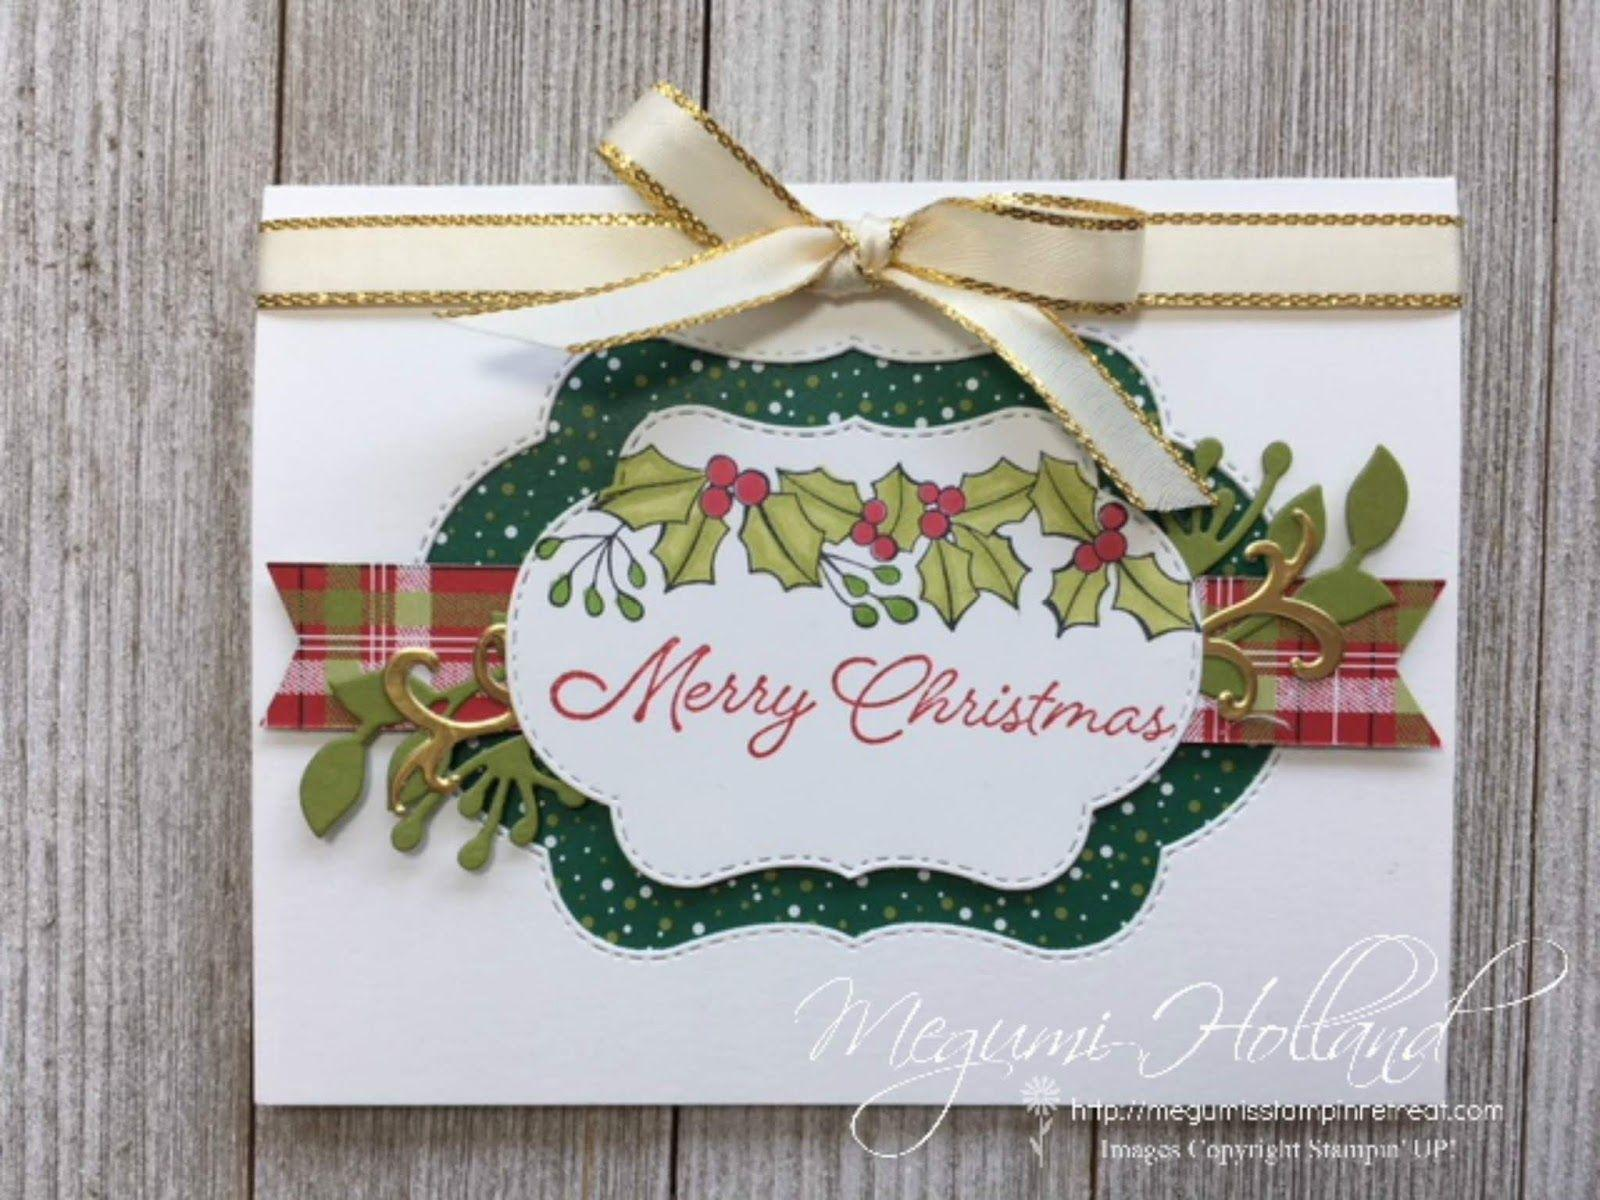 Megumi's Stampin Retreat: Blended Seasons Merry Christmas Card ...